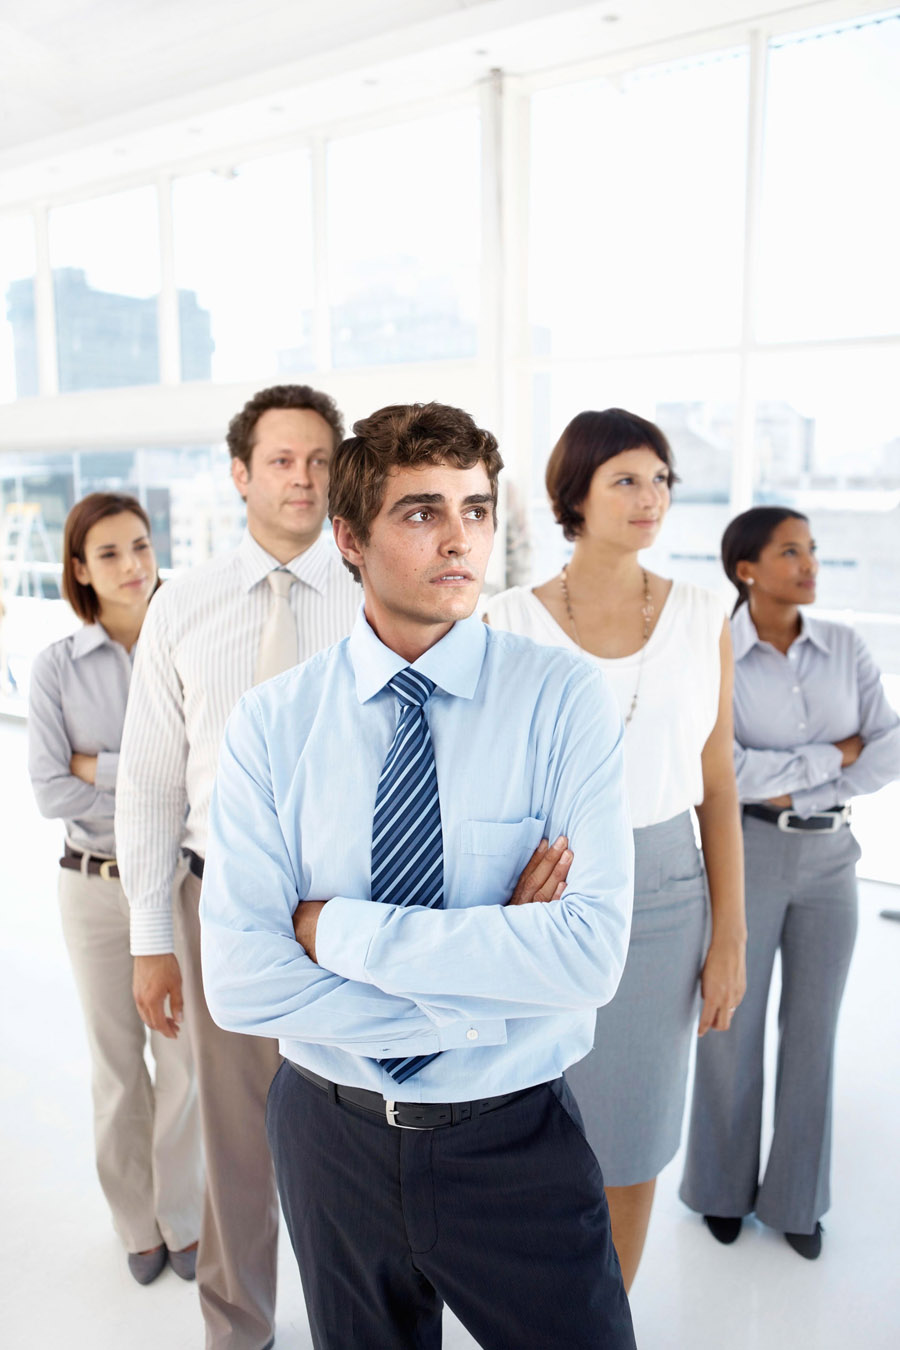 Manager with business group standing in office